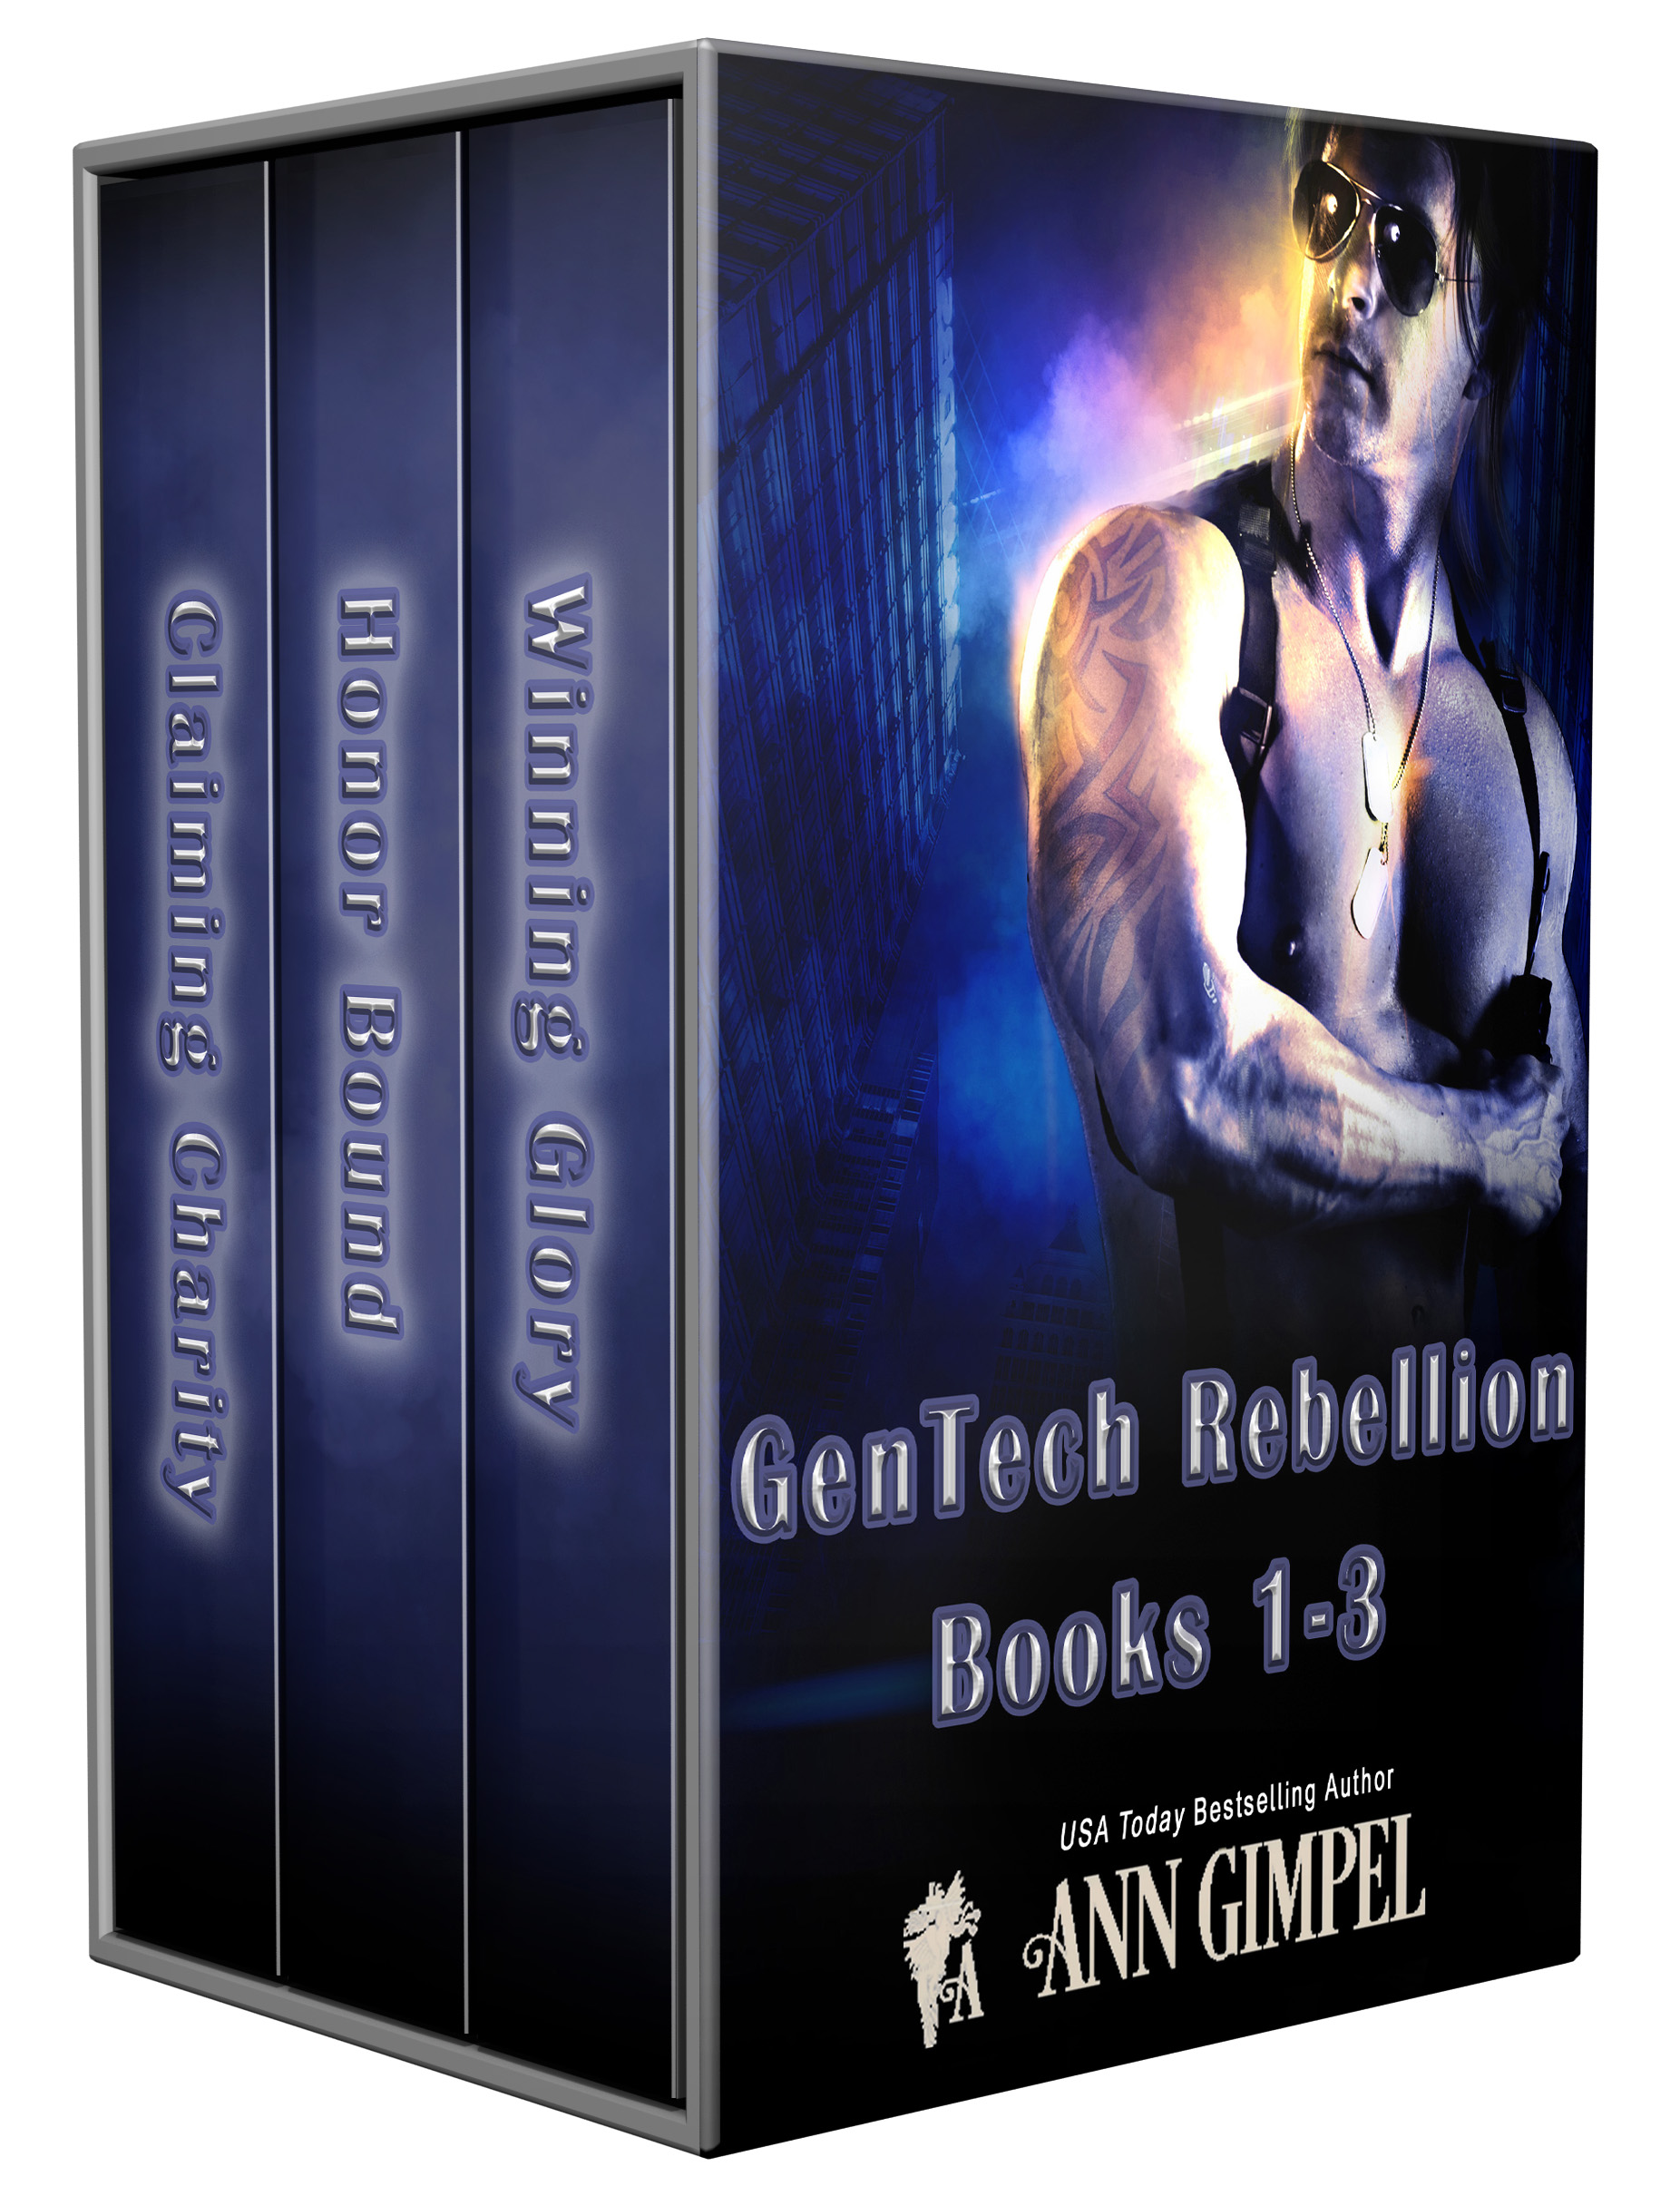 GenTech Rebellion, Books 1-3